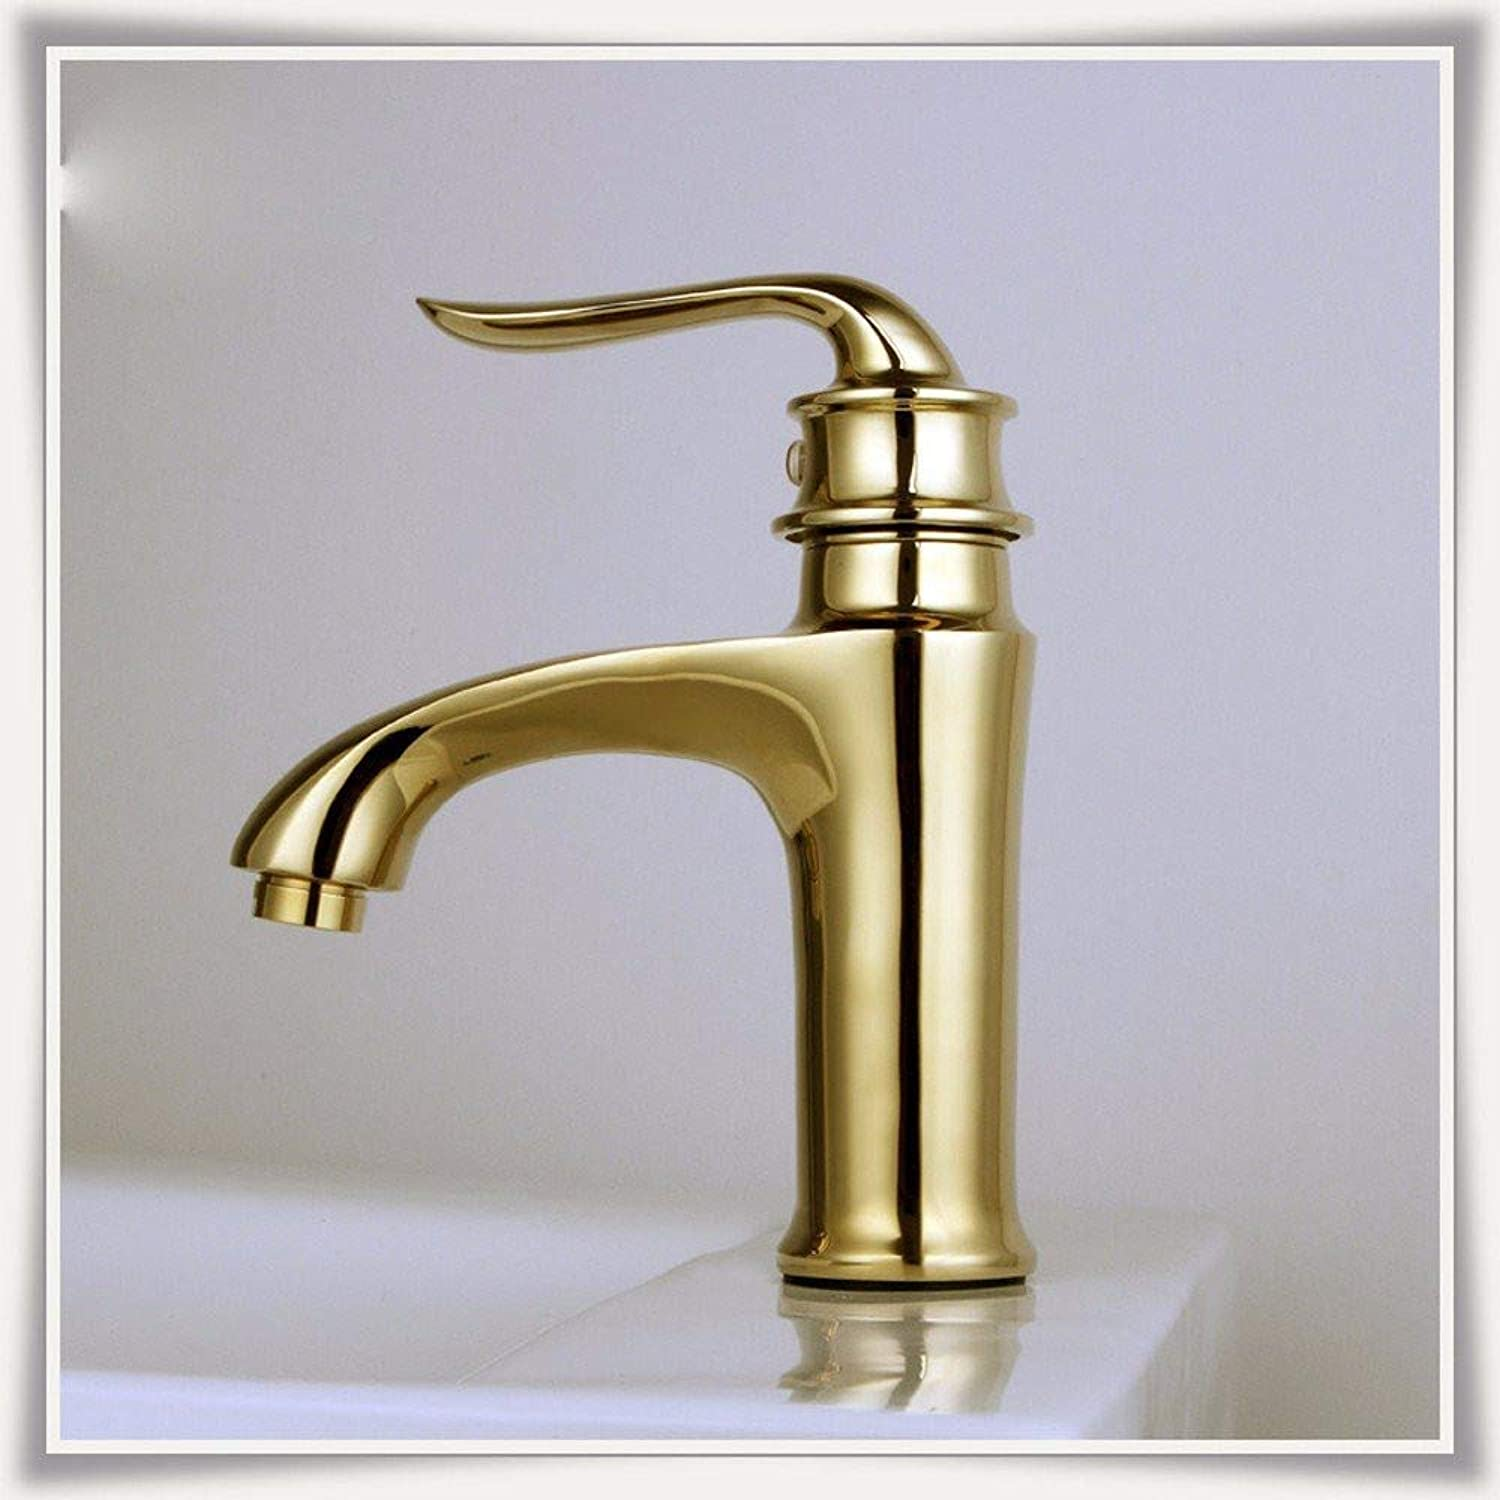 Faucet360° redating Faucet Retro Faucetthe Copper-colord Basin Hot and Cold Basin High Quality Faucet